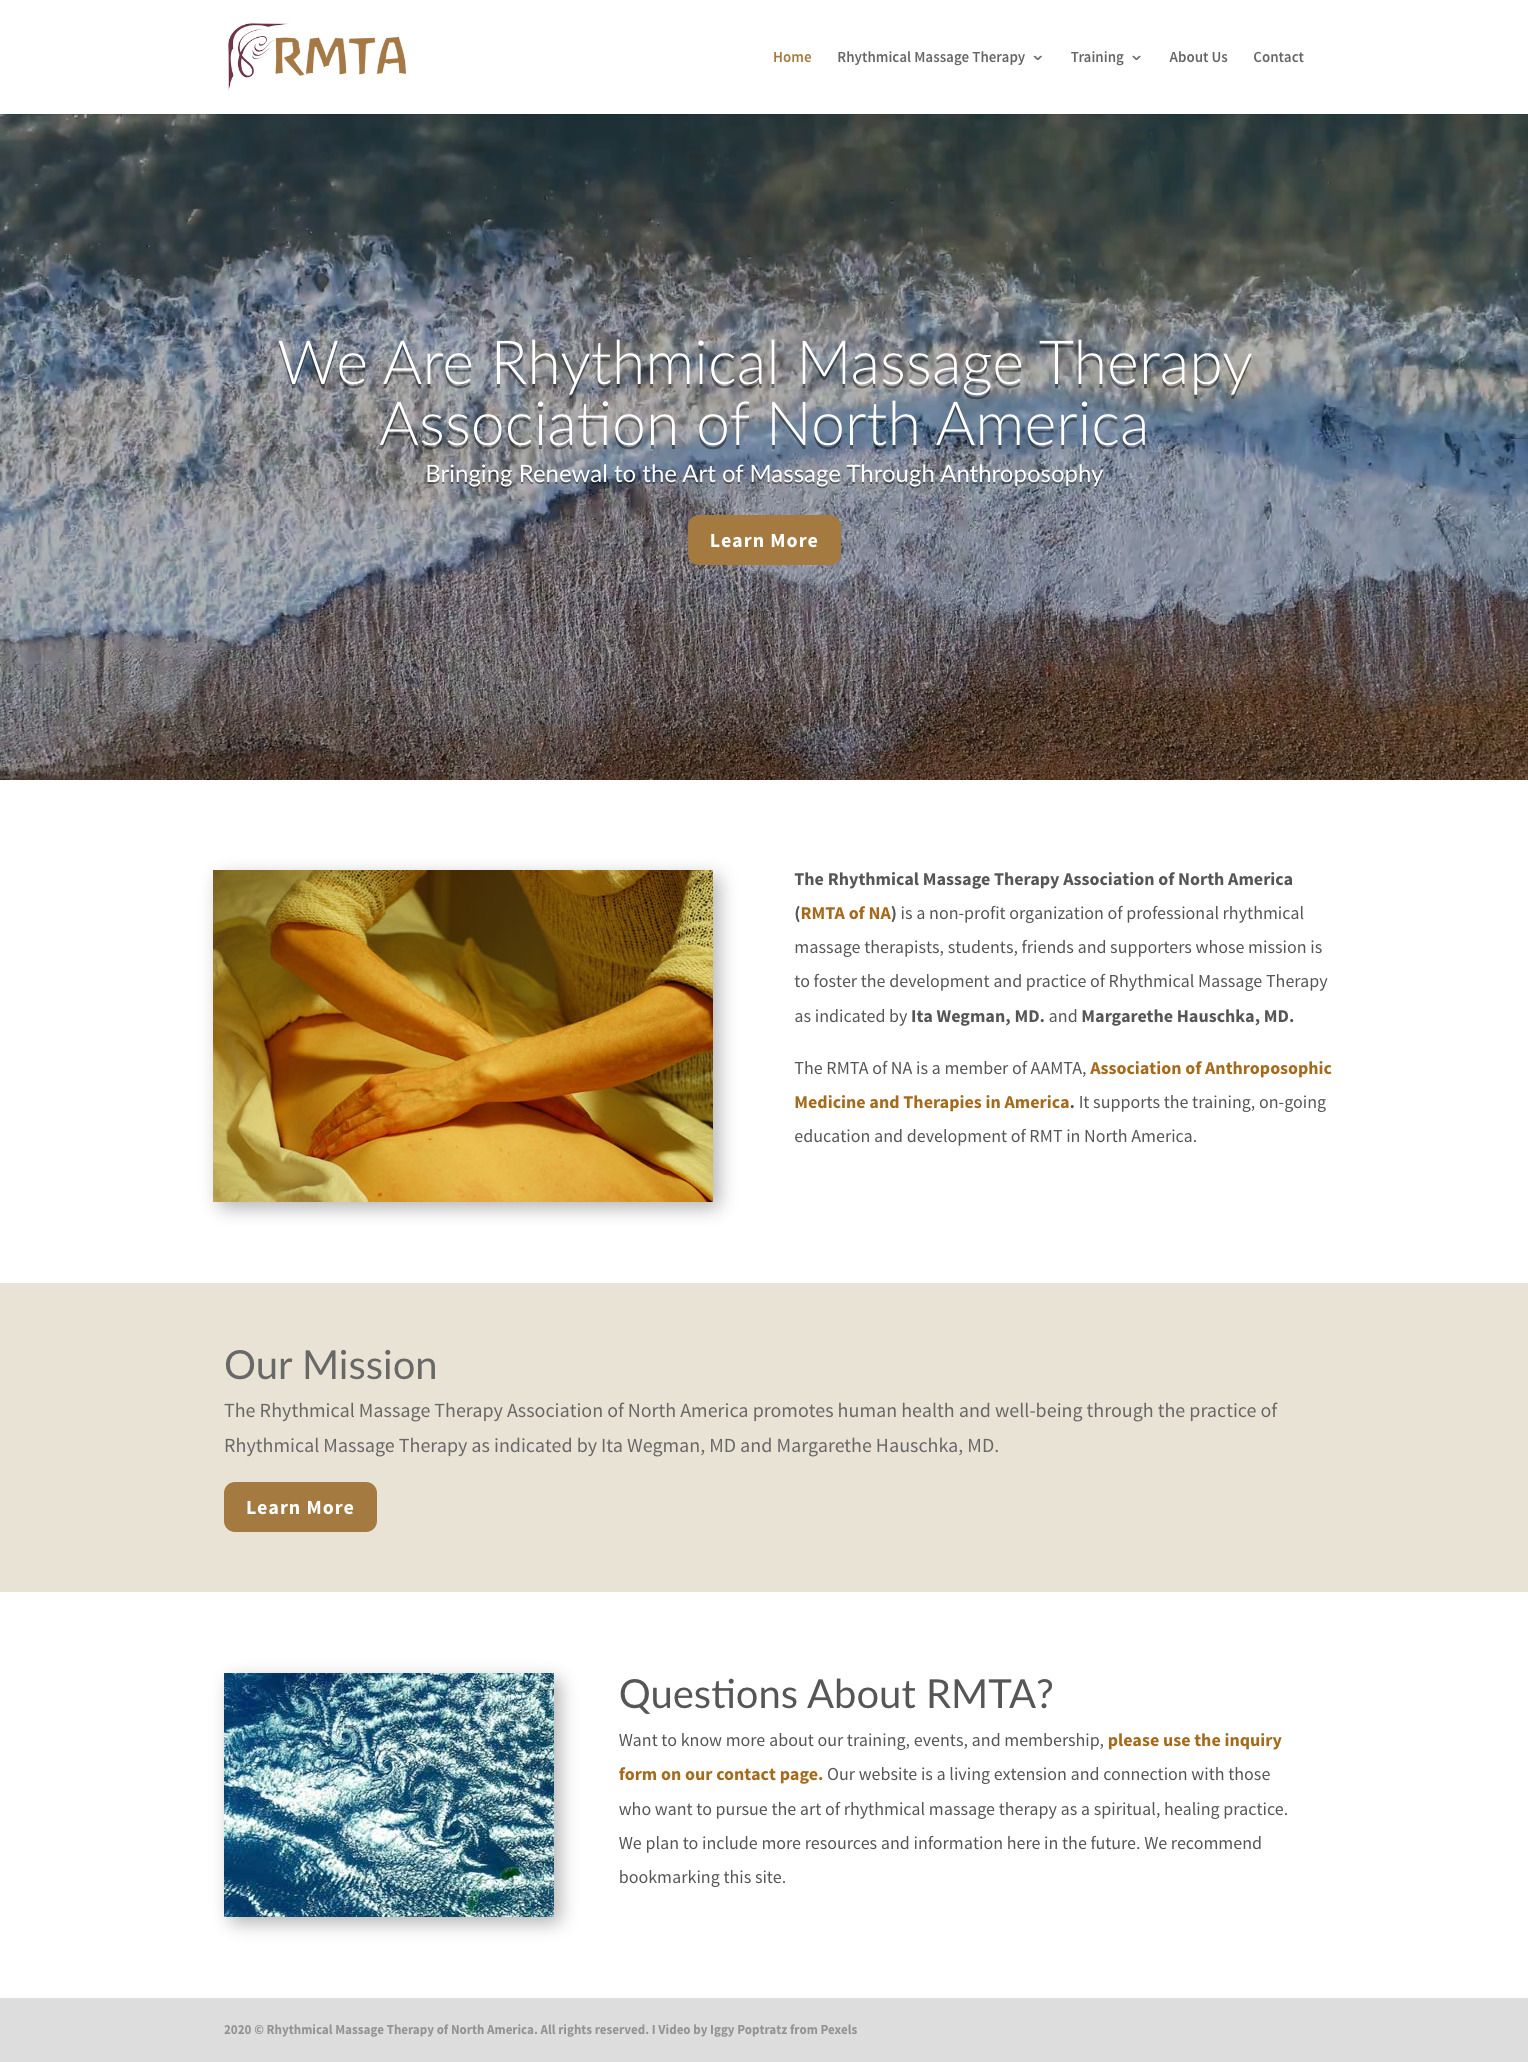 rhythmical-massage-therapy-association-website-after